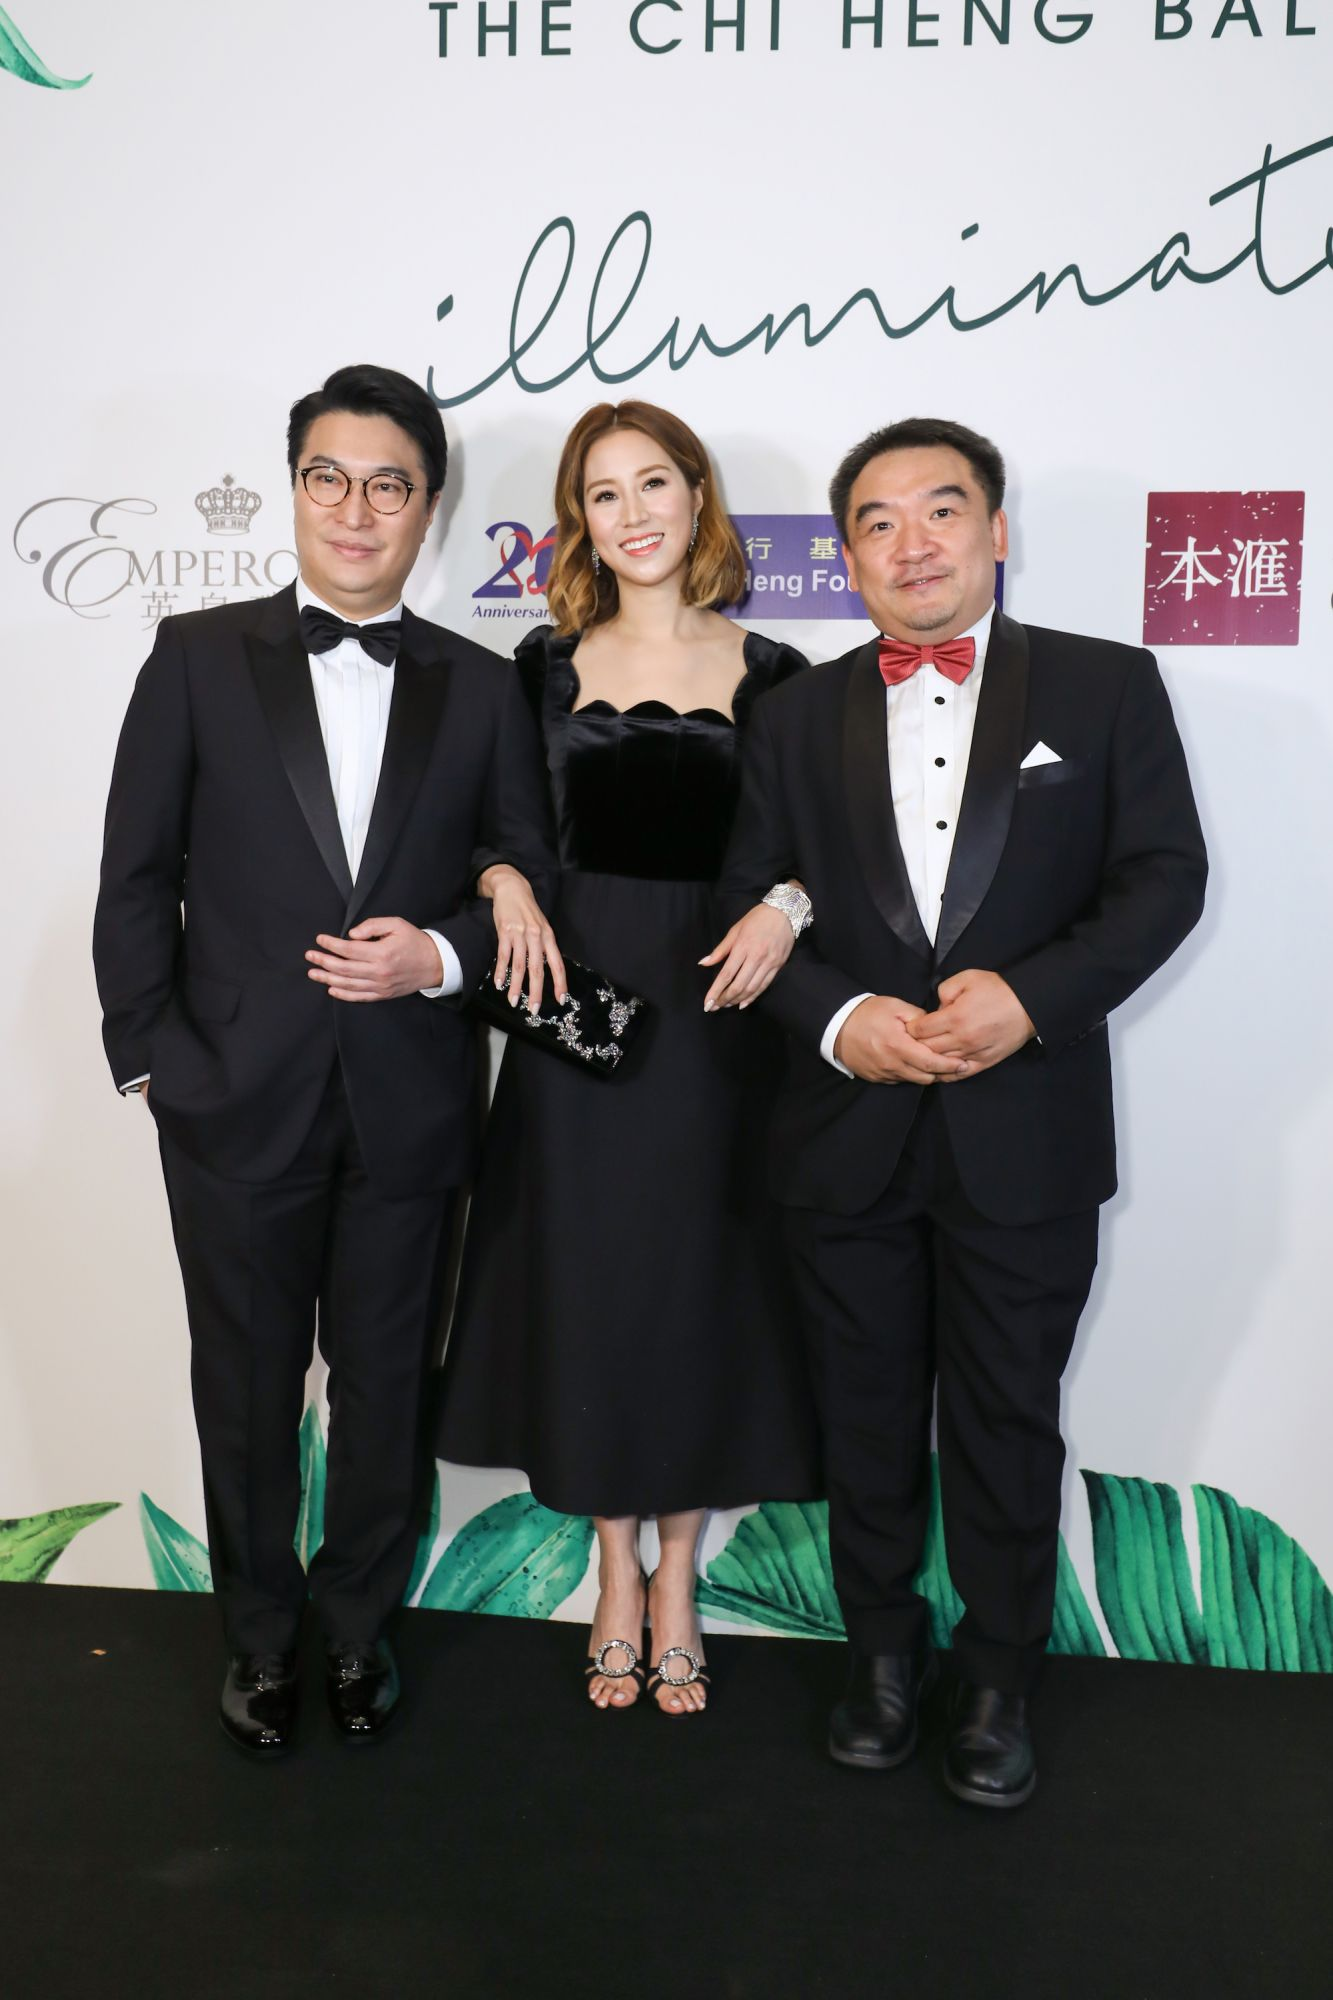 Martin Lee, Cathy Lee, Chung To